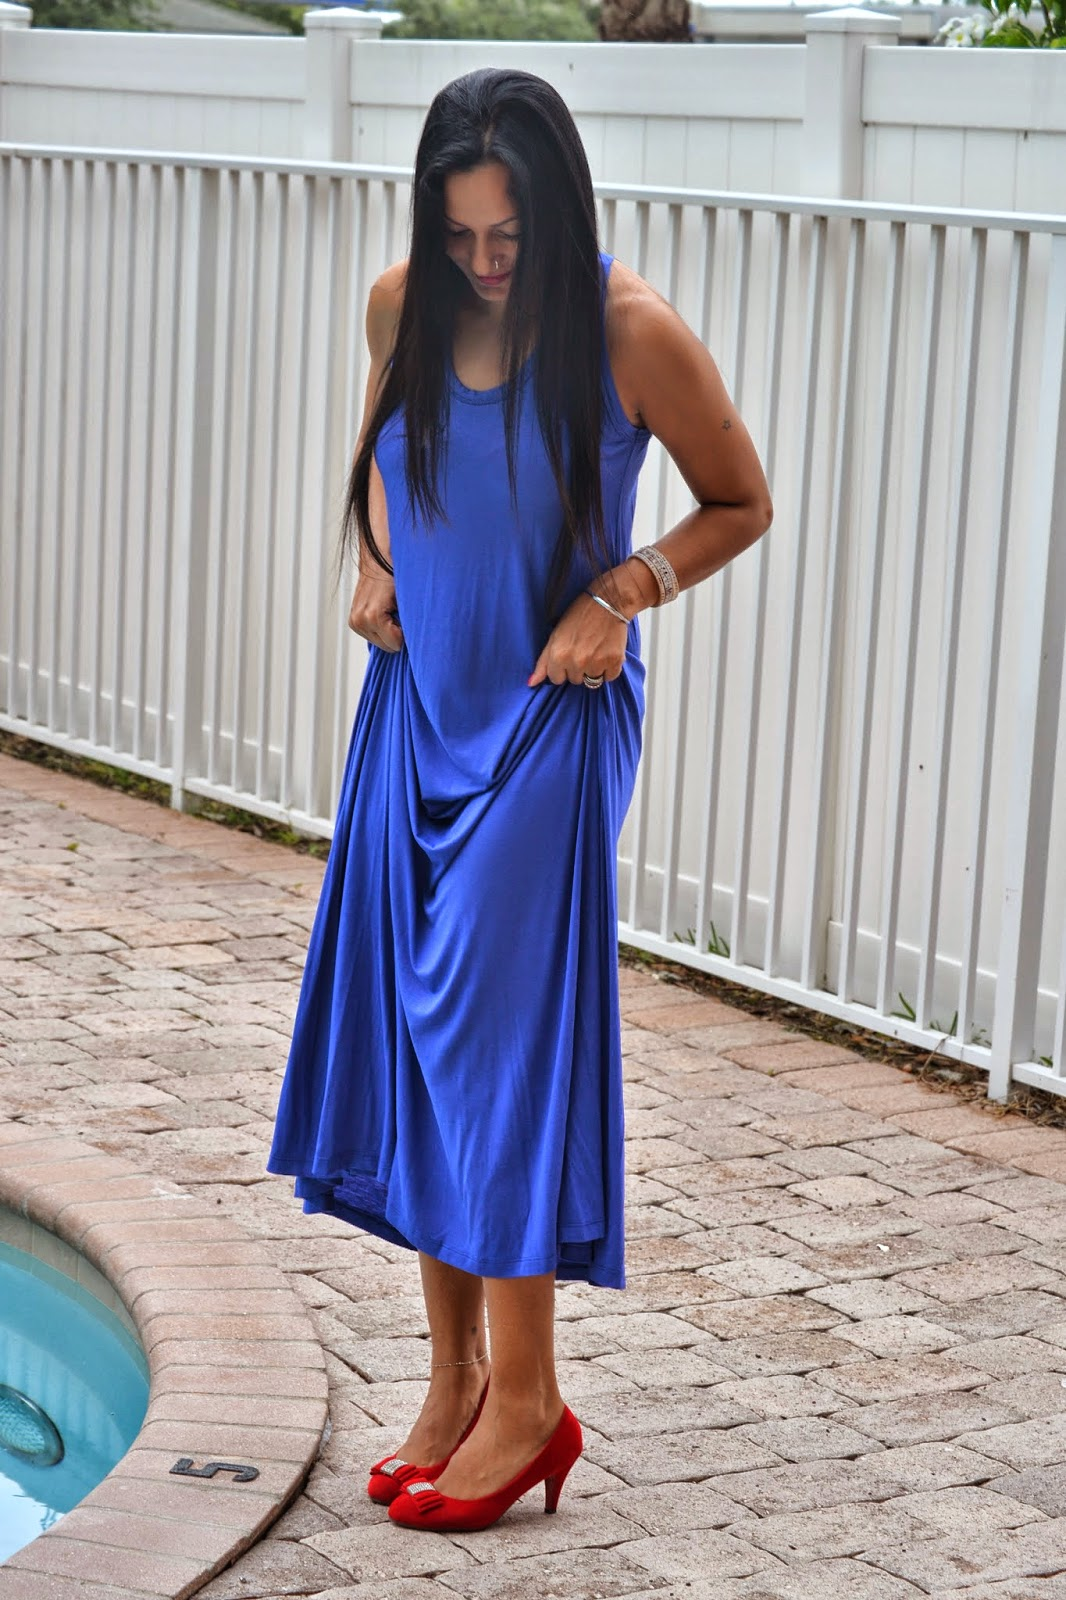 Blue Maxi Dress Outfit wholesale clothing, fashion clothes, fashion clothing, designer fashion online, fashion online Australia, indian fashion online, fashion dresses, women fashion, ladies fashion, cheap fashion,clothing for women, fashion shoes